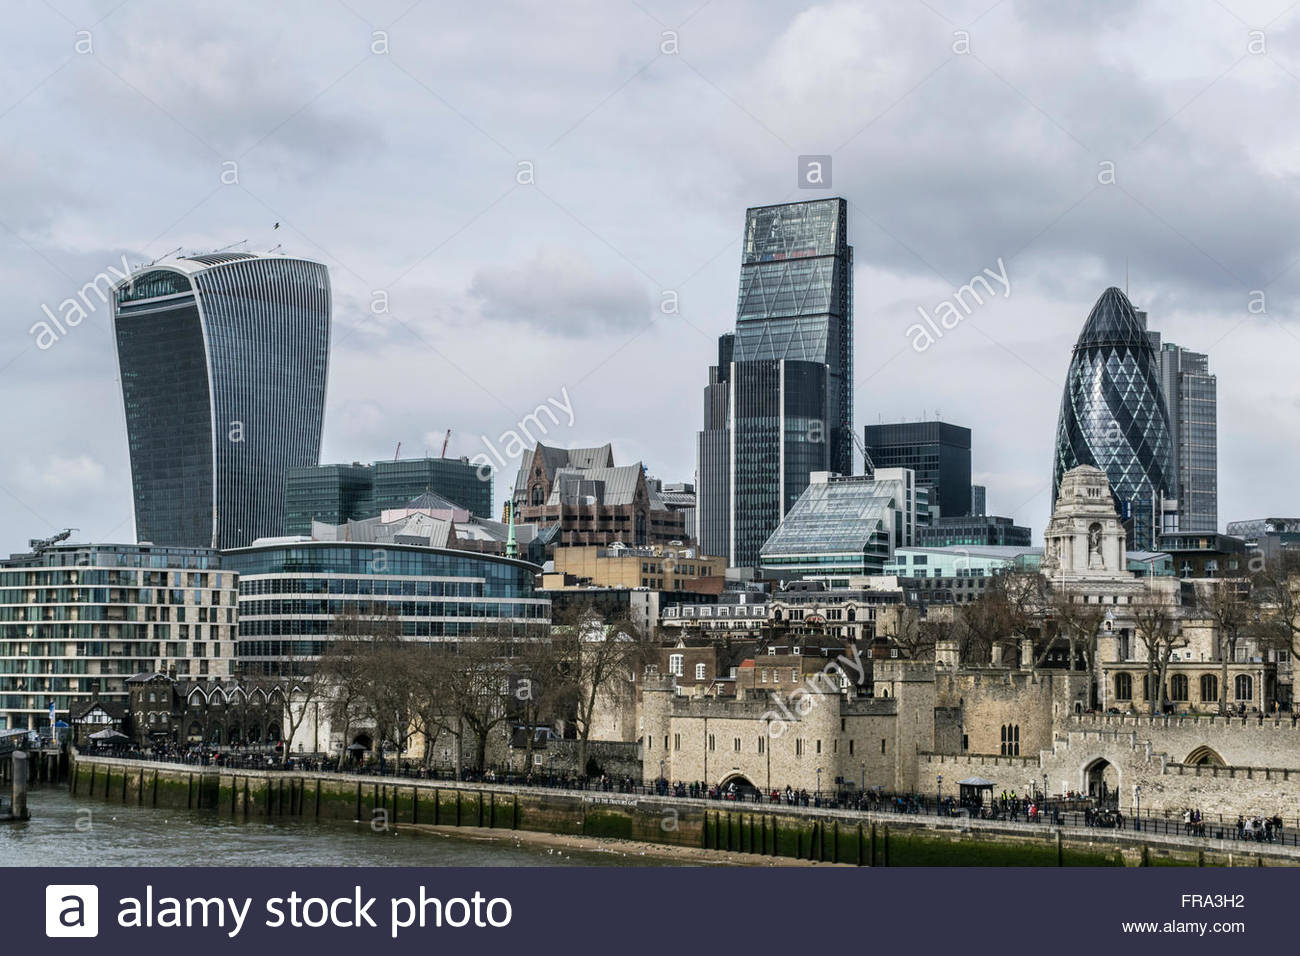 The London City skyline from Tower Bridge with the Walkie Talkie, The Cheesegrater and the Gherkin - Stock Image